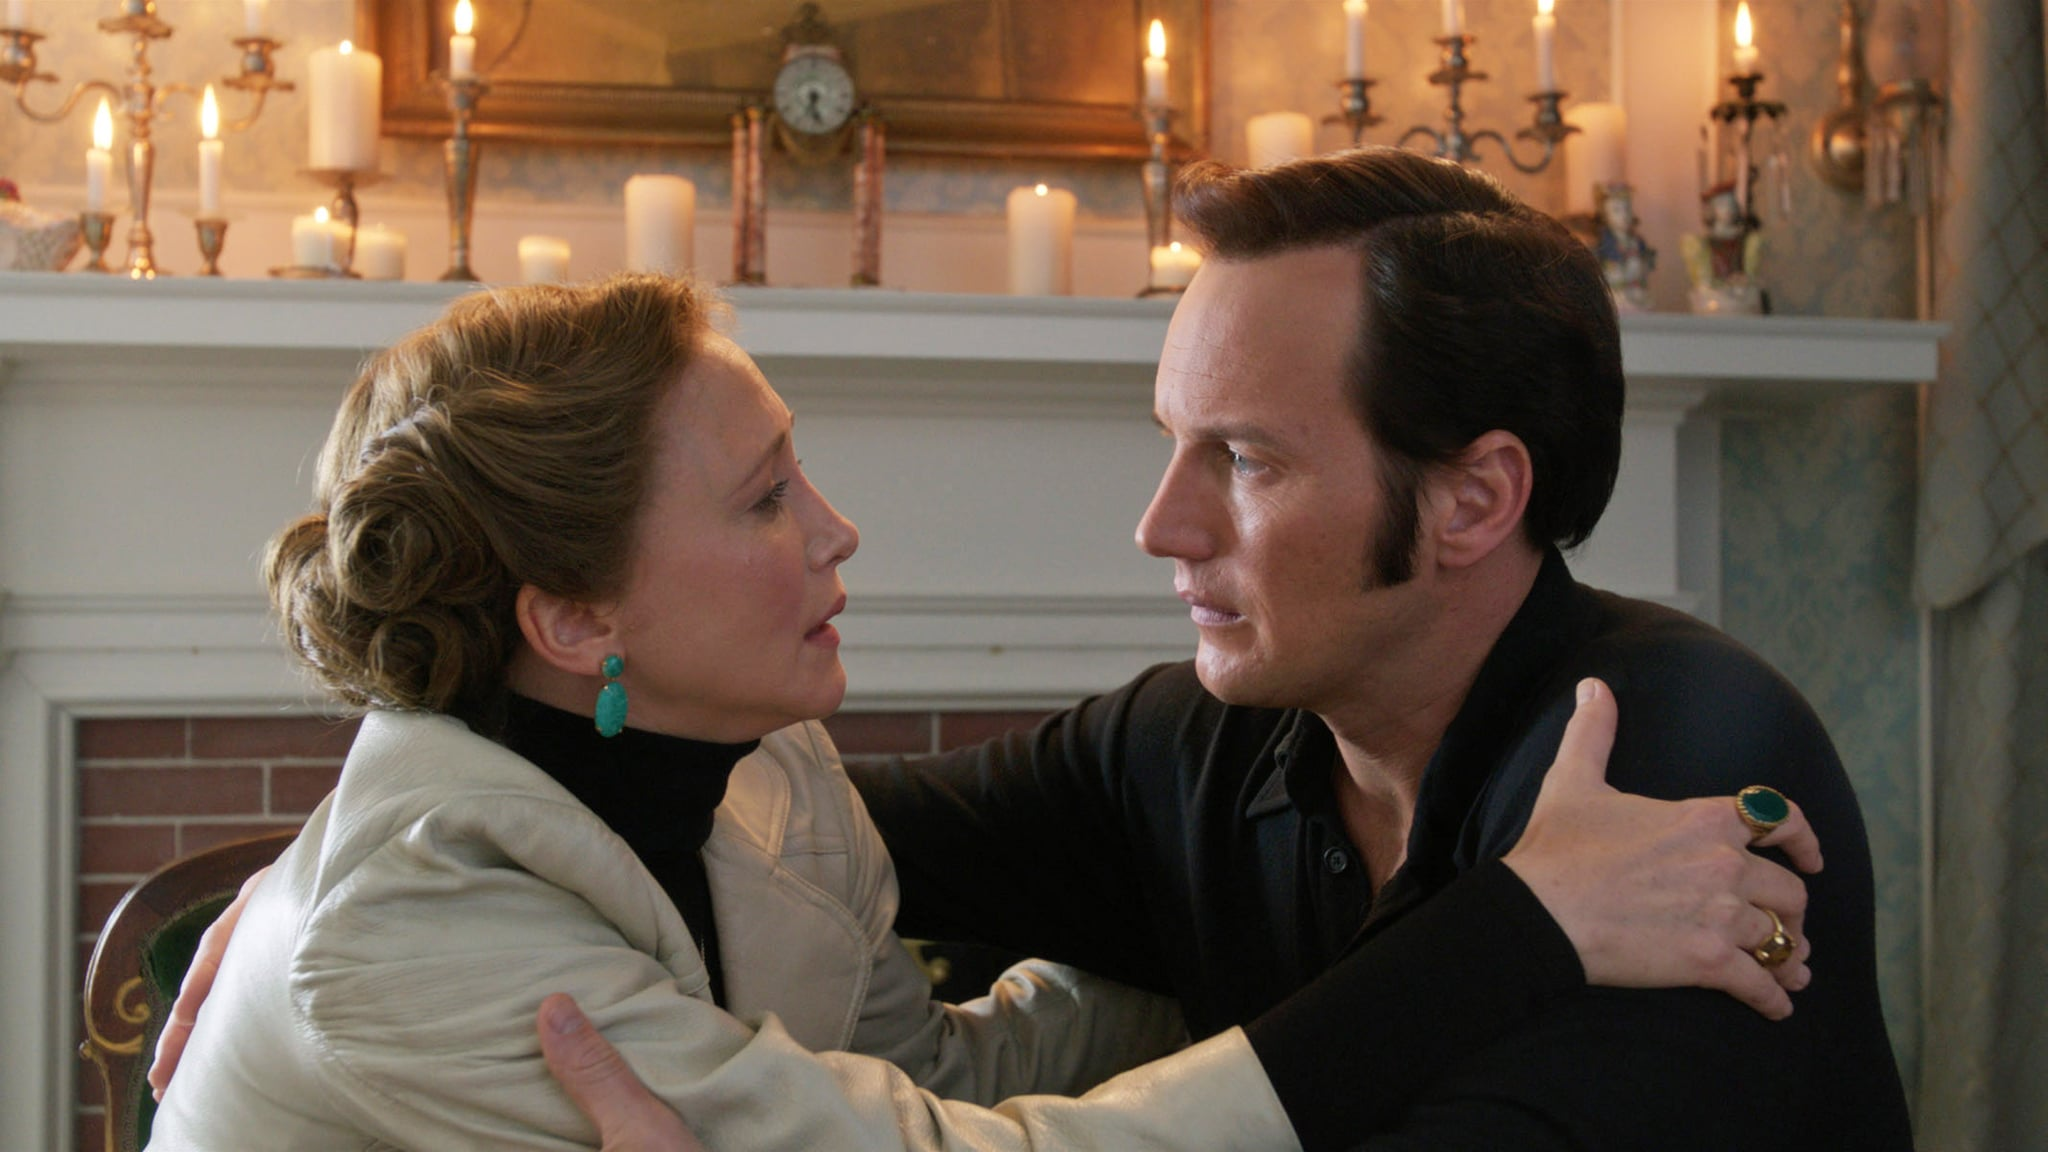 THE CONJURING 2, from left: Vera Farmiga, Patrick Wilson, 2016.  New Line Cinema / courtesy Everett Collection